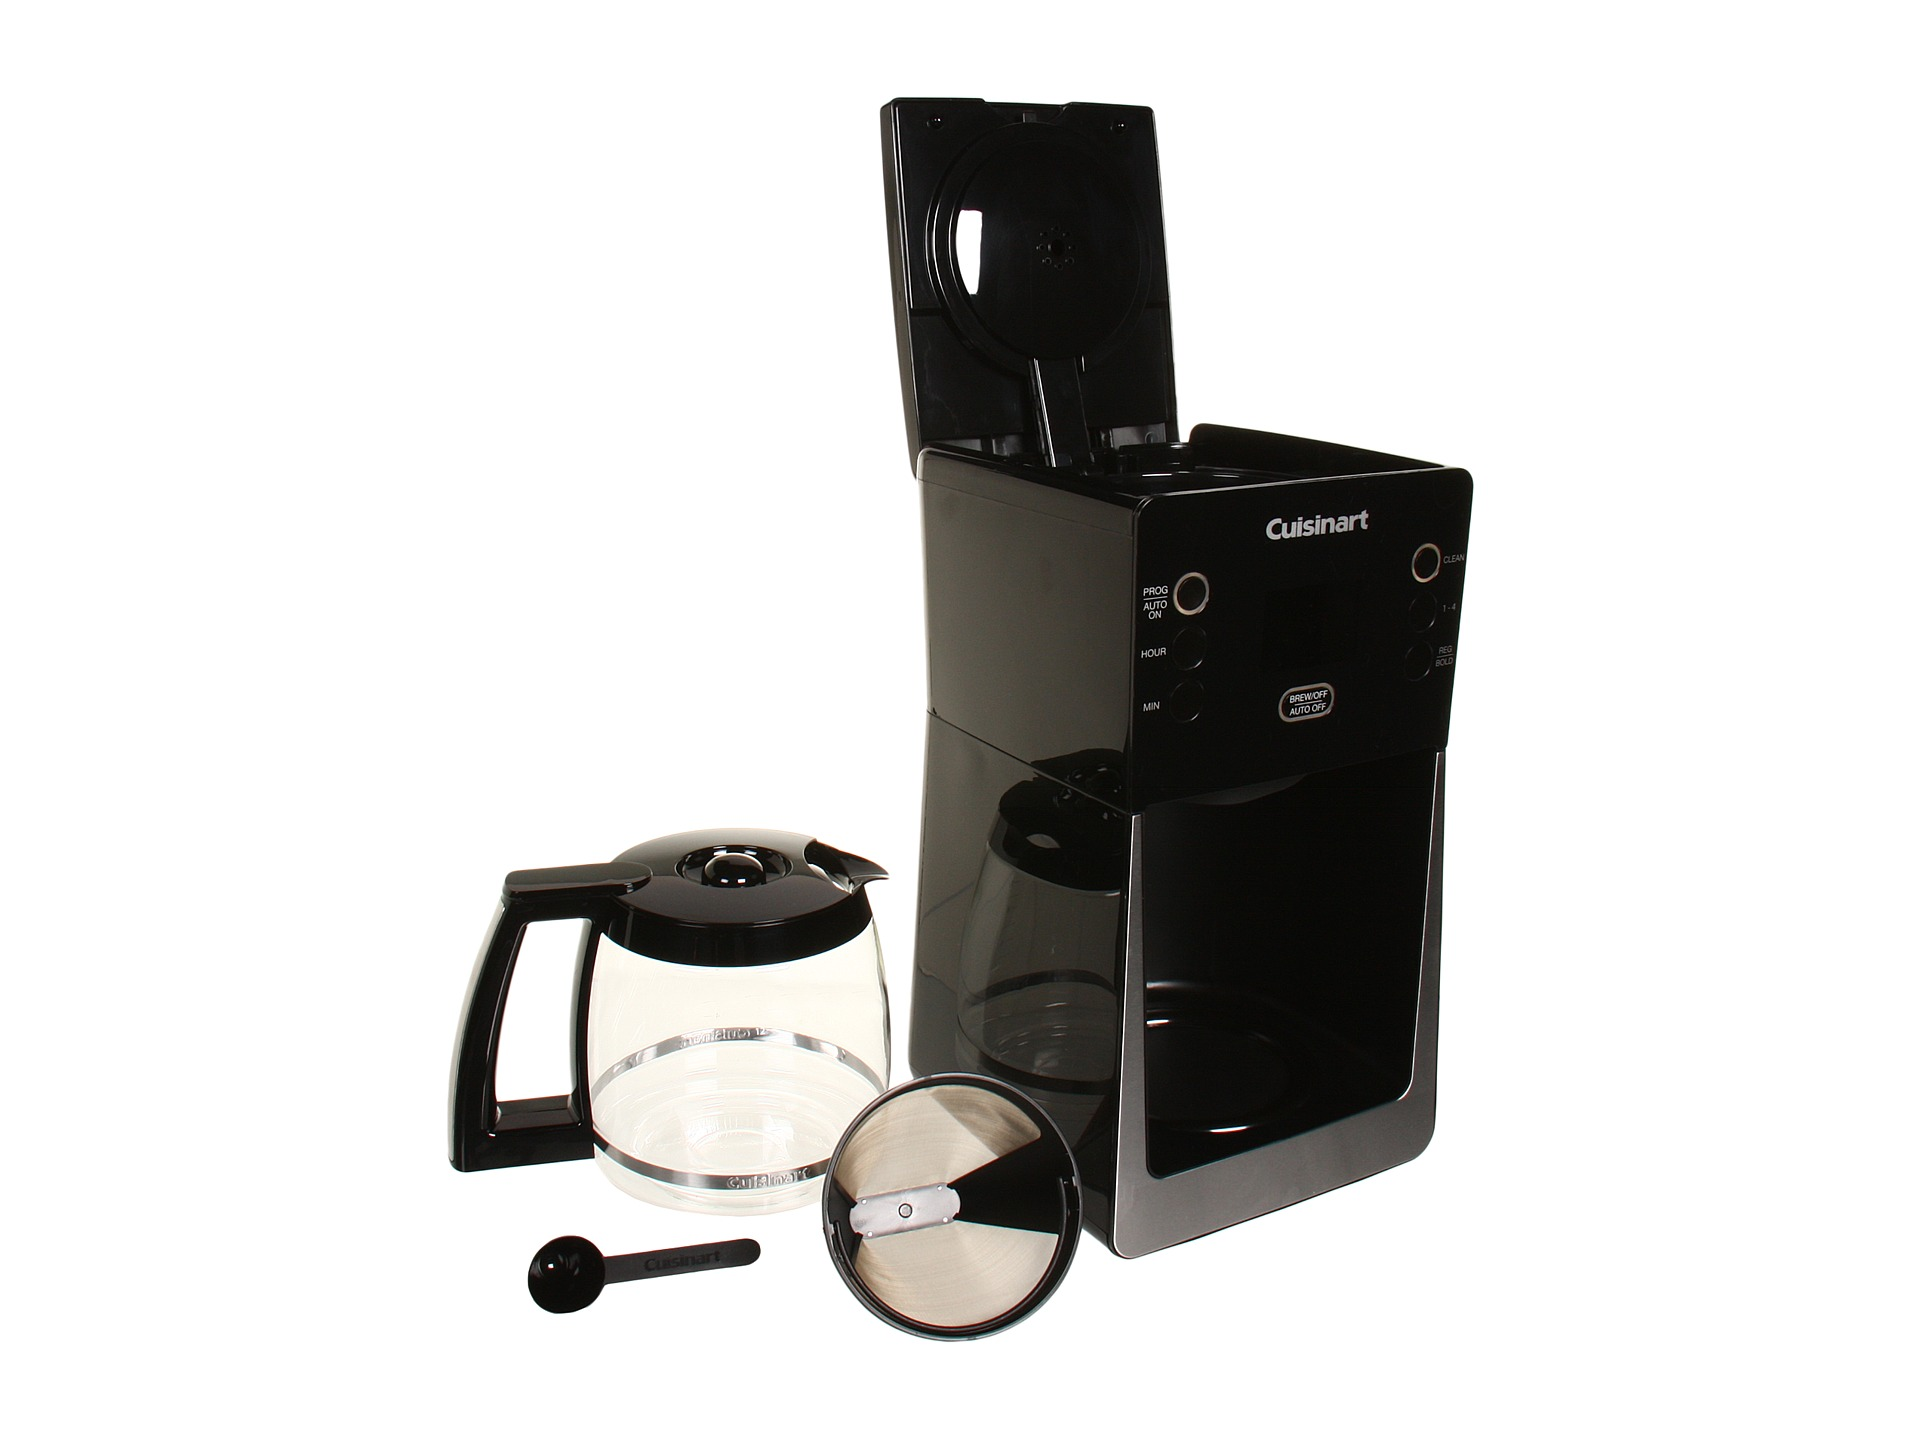 Cuisinart Dcc 2800 Perfectemp 14 Cup Glass Coffee Maker Shipped Free at Zappos